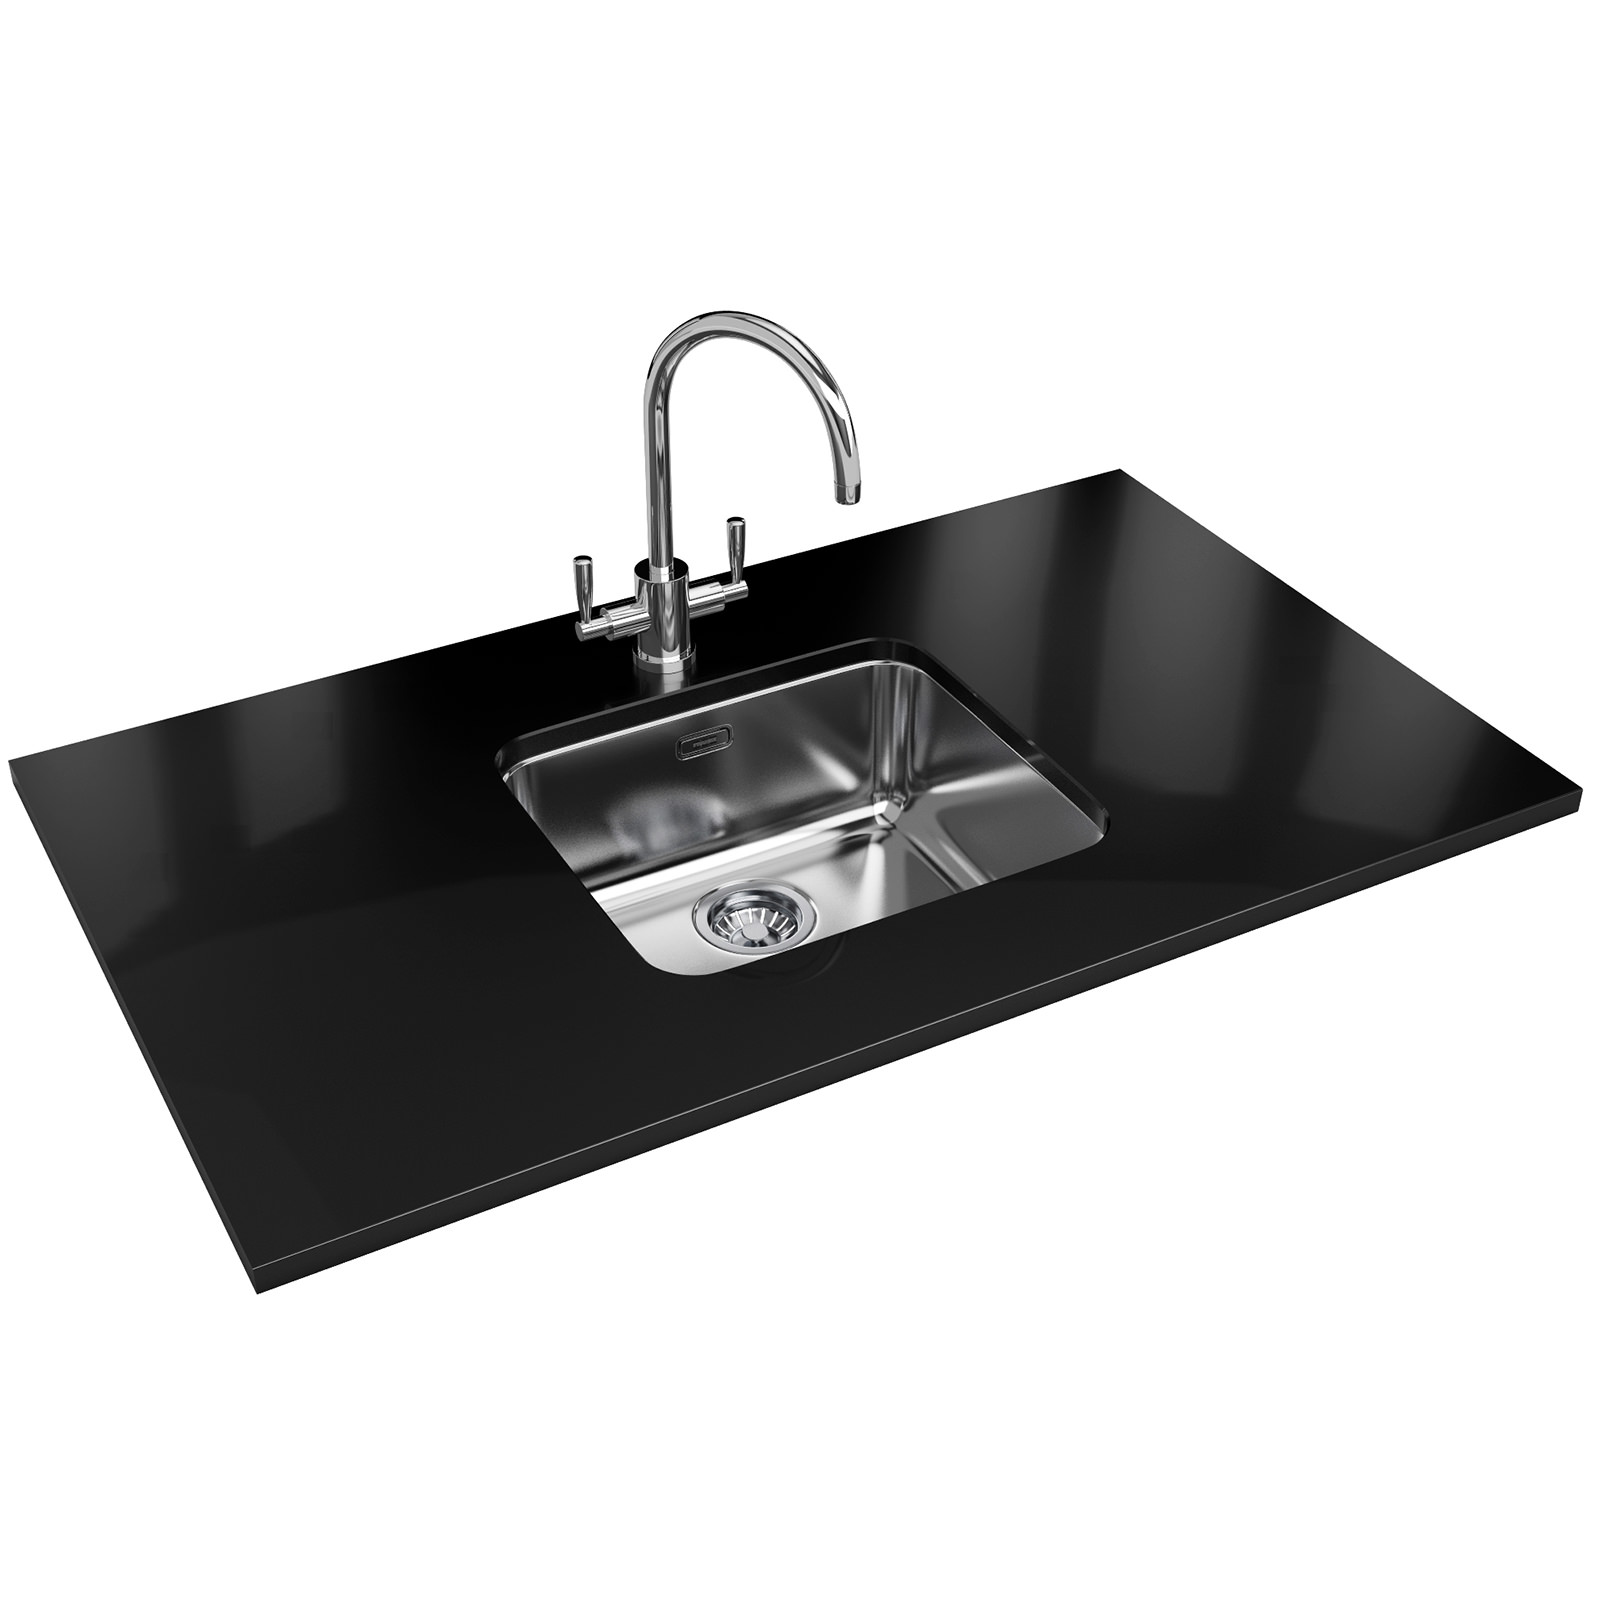 Franke Sinks And Taps : Franke Largo Designer Pack LAX 110 45 Stainless Steel Sink And Tap ...